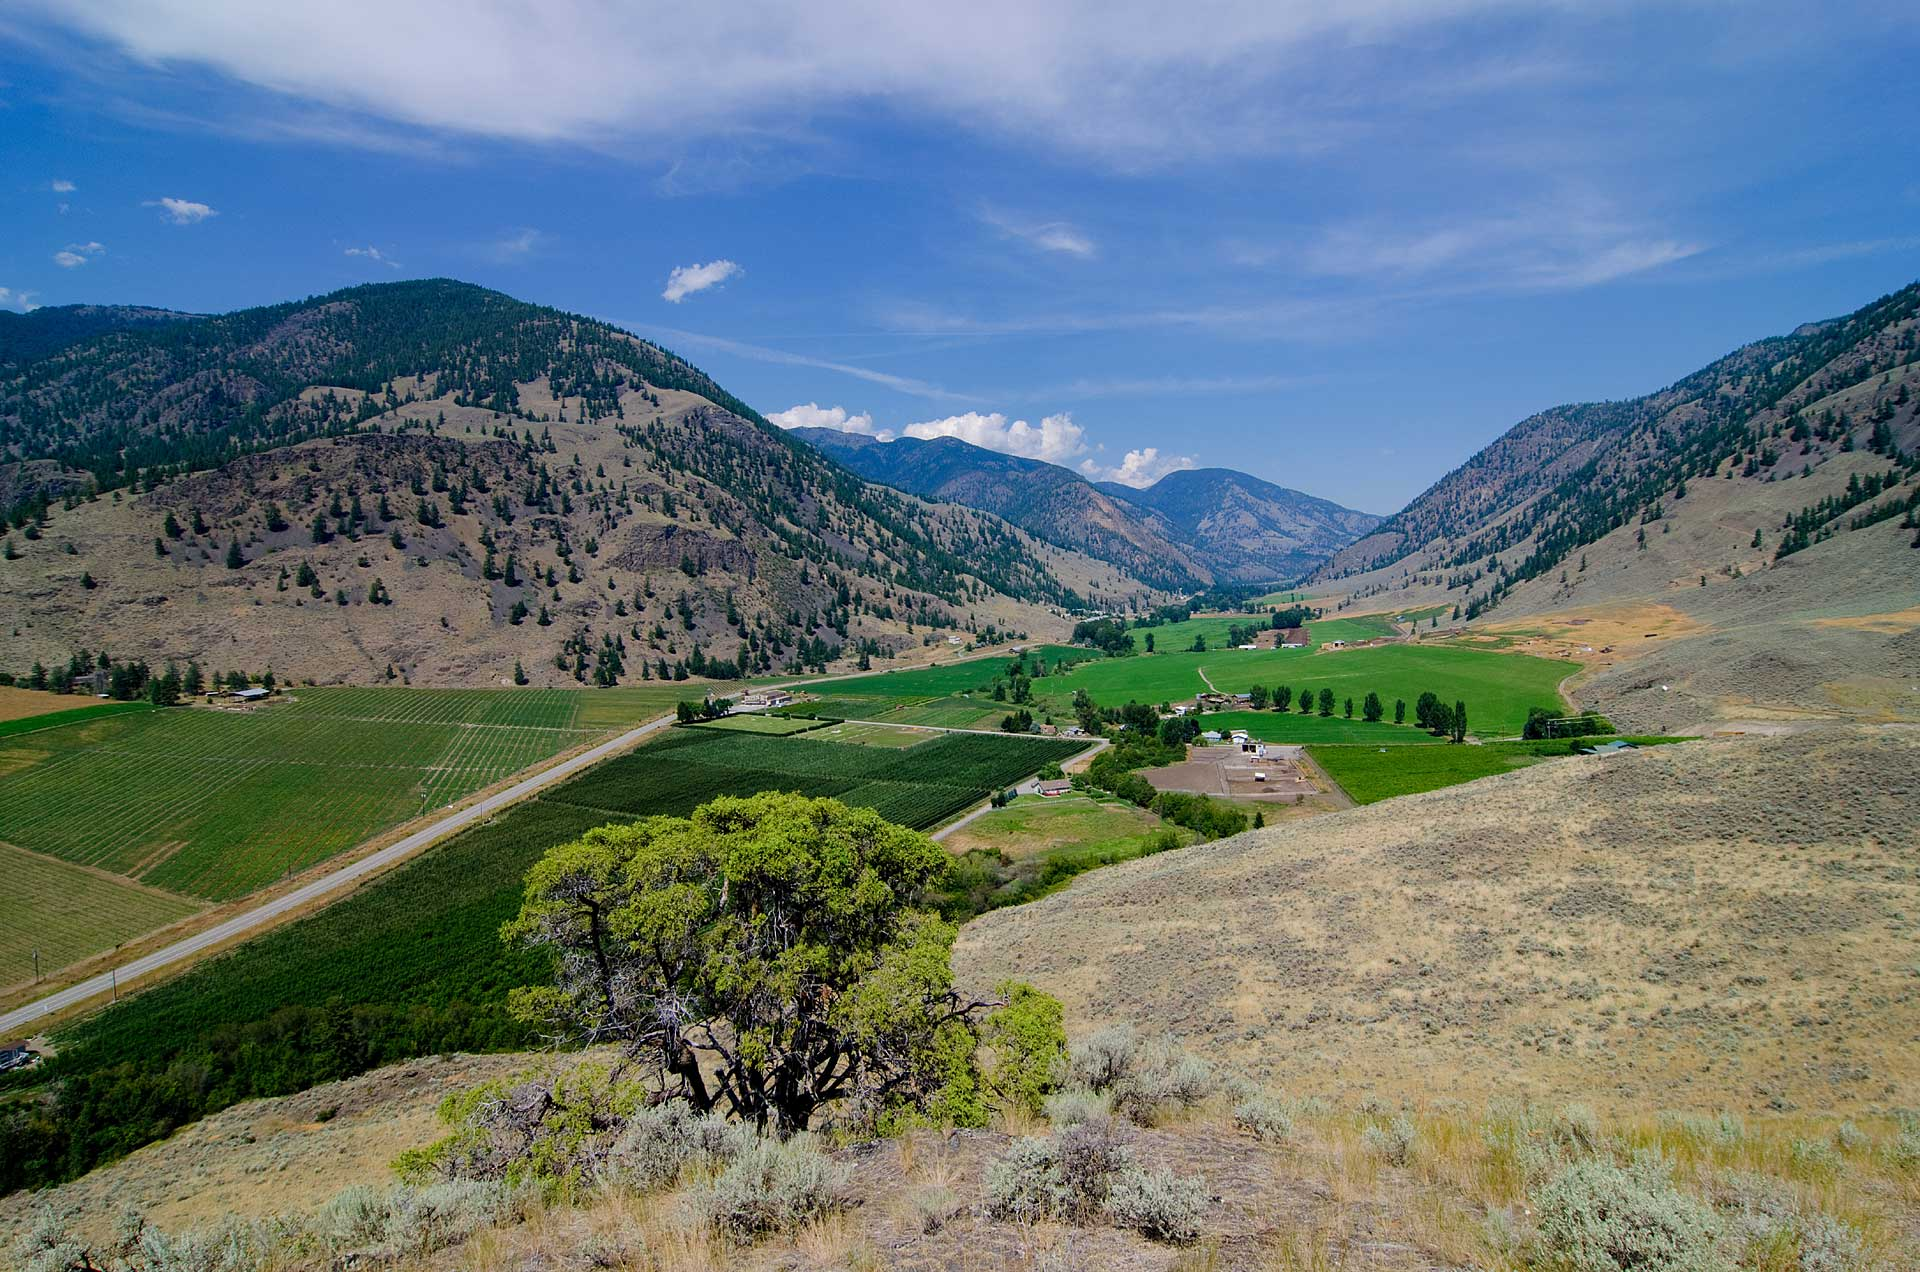 Bed & Breakfasts in the Similkameen Valley